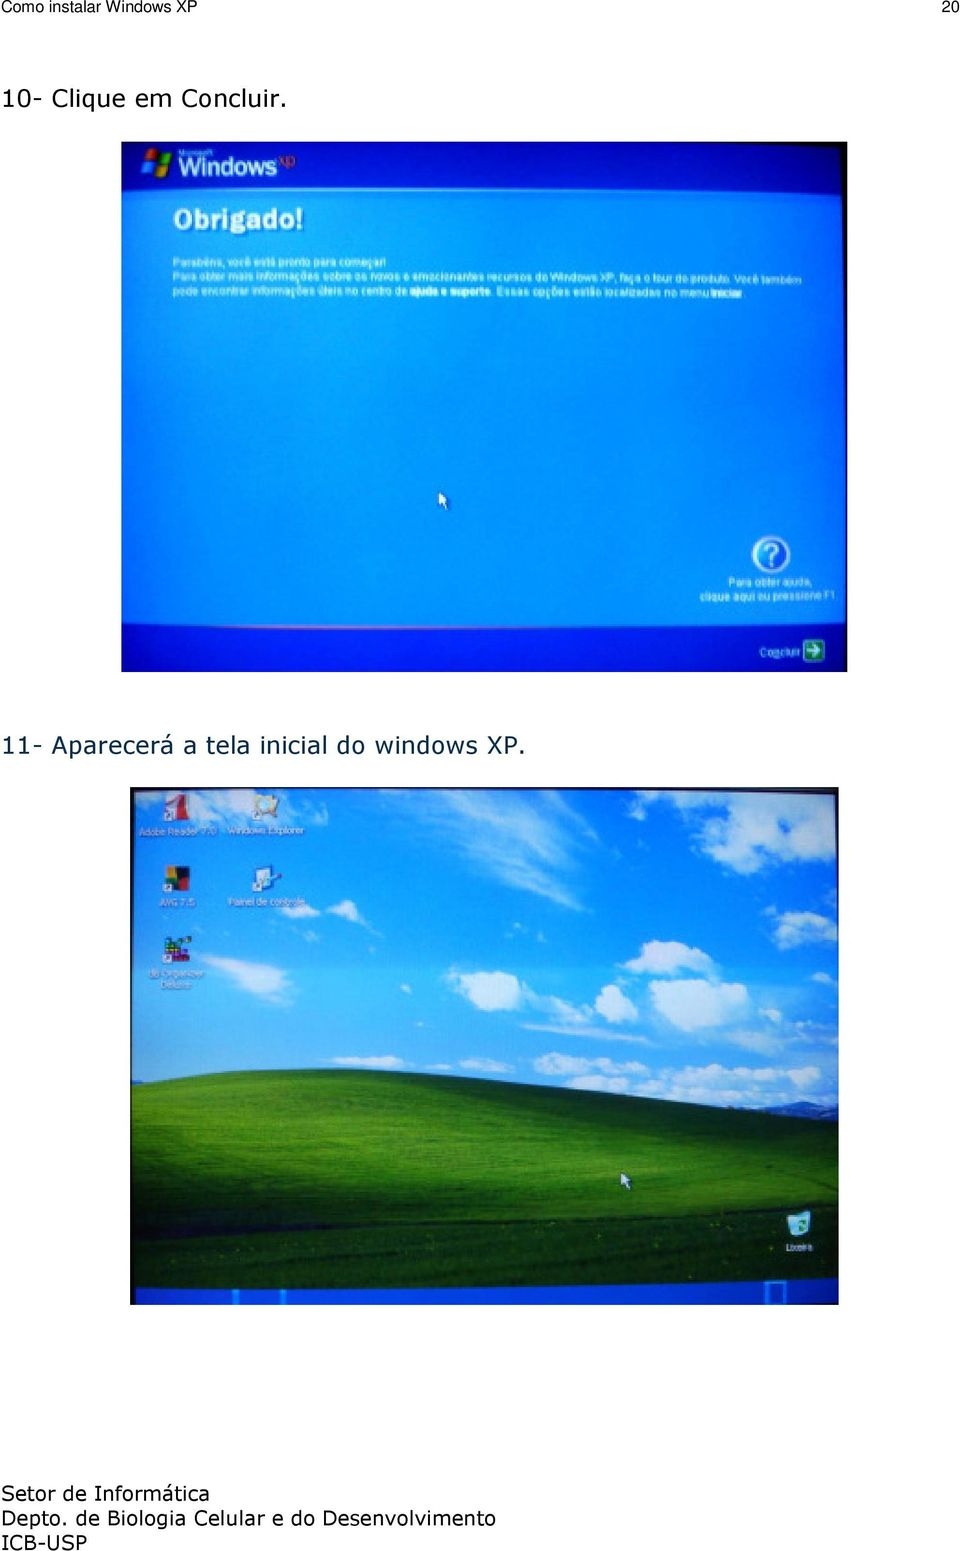 11- Aparecerá a tela inicial do windows XP.